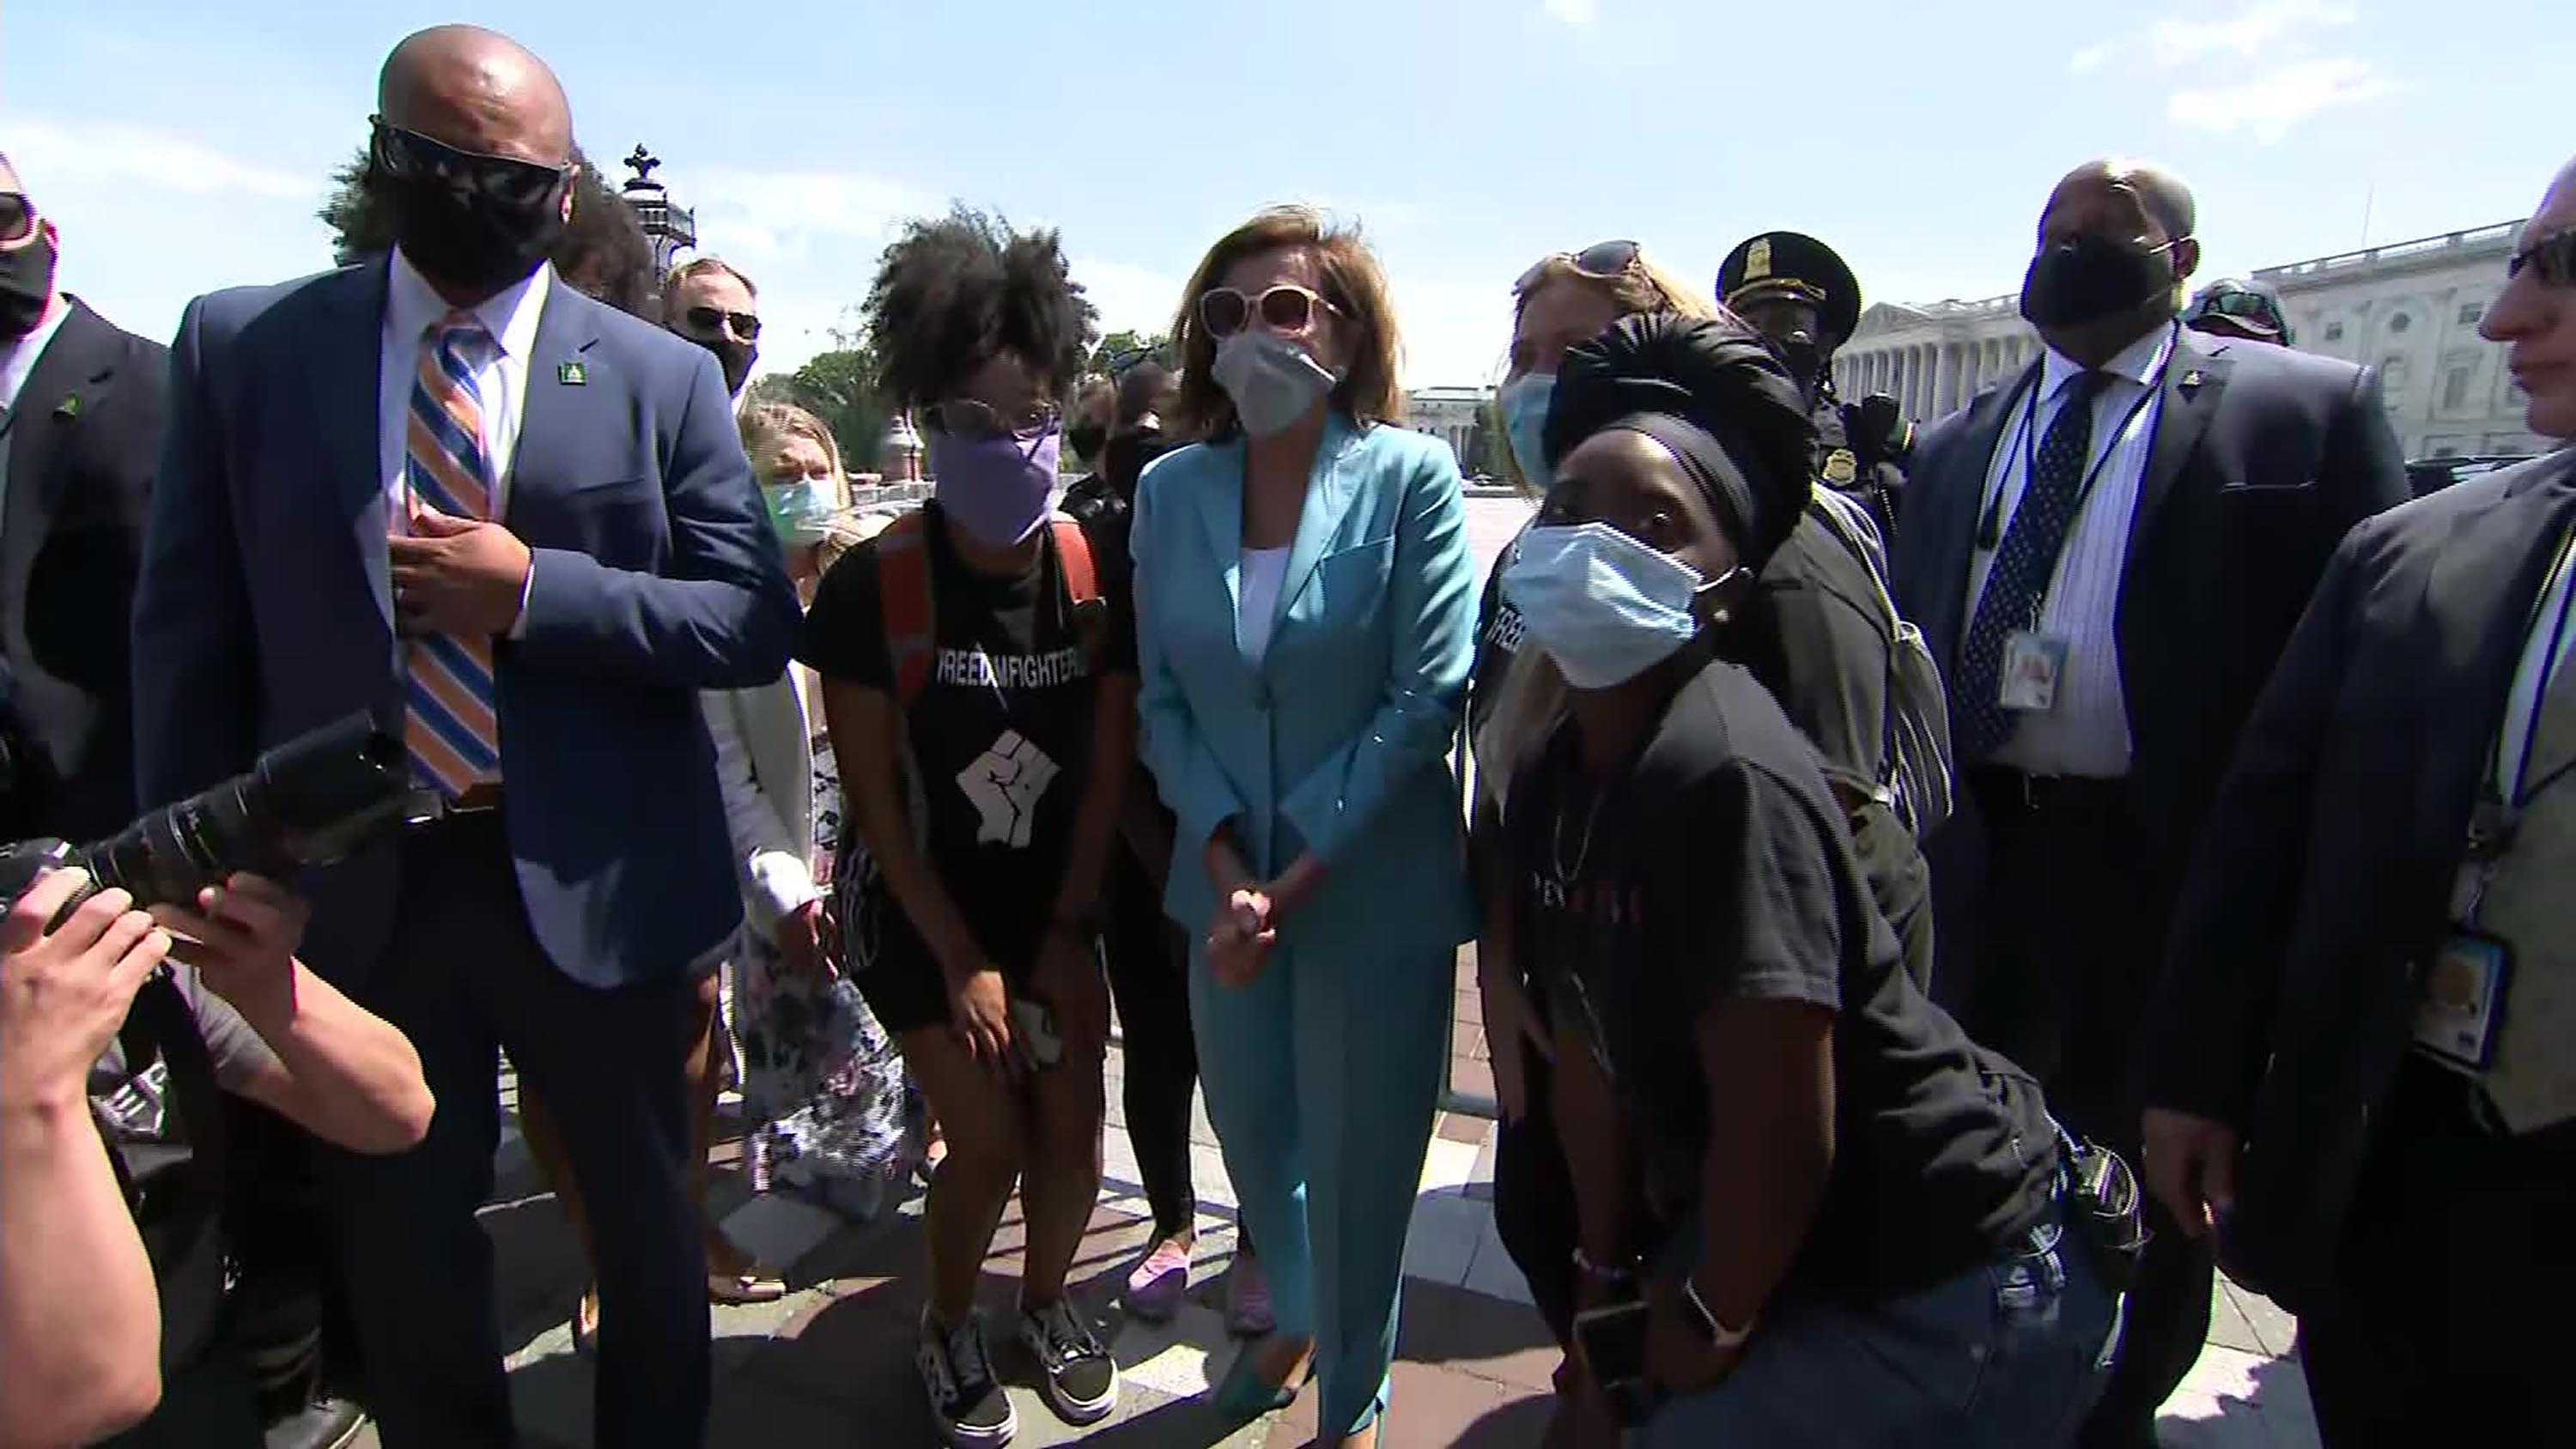 Nancy Pelosi becomes the latest Democratic lawmaker to visit DC protests